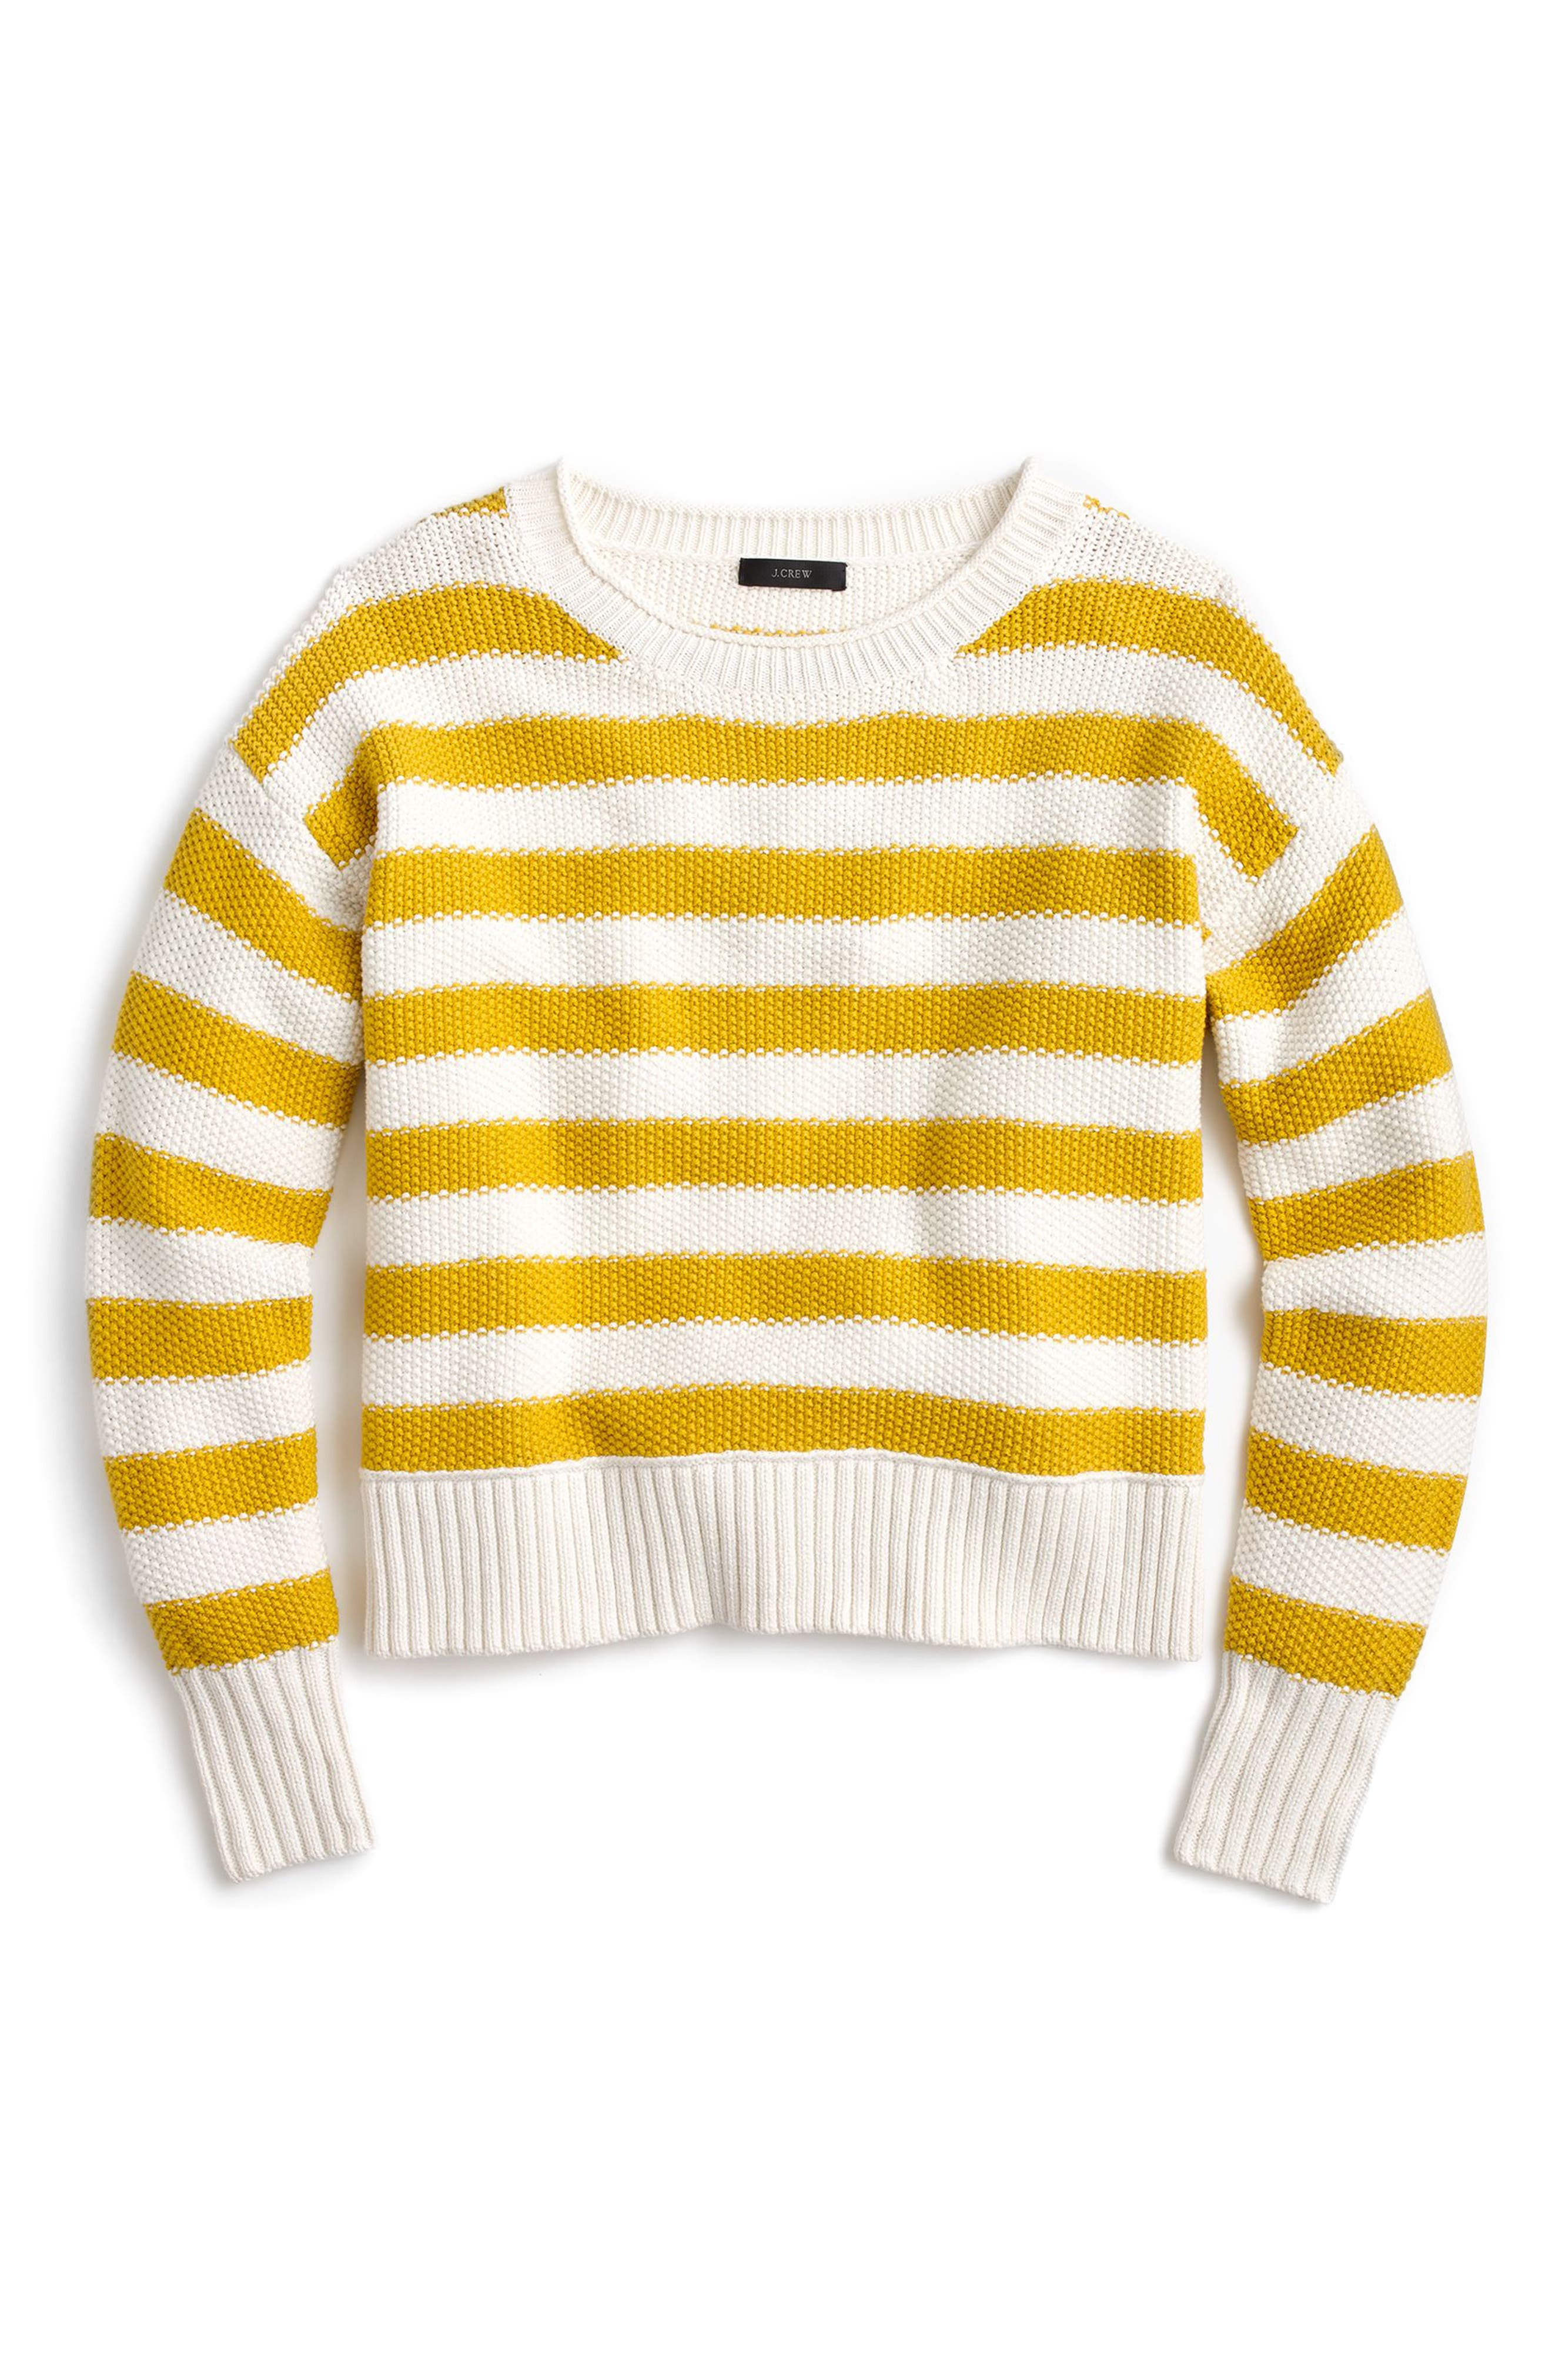 Main Image - J.Crew Textured Stripe Sweater